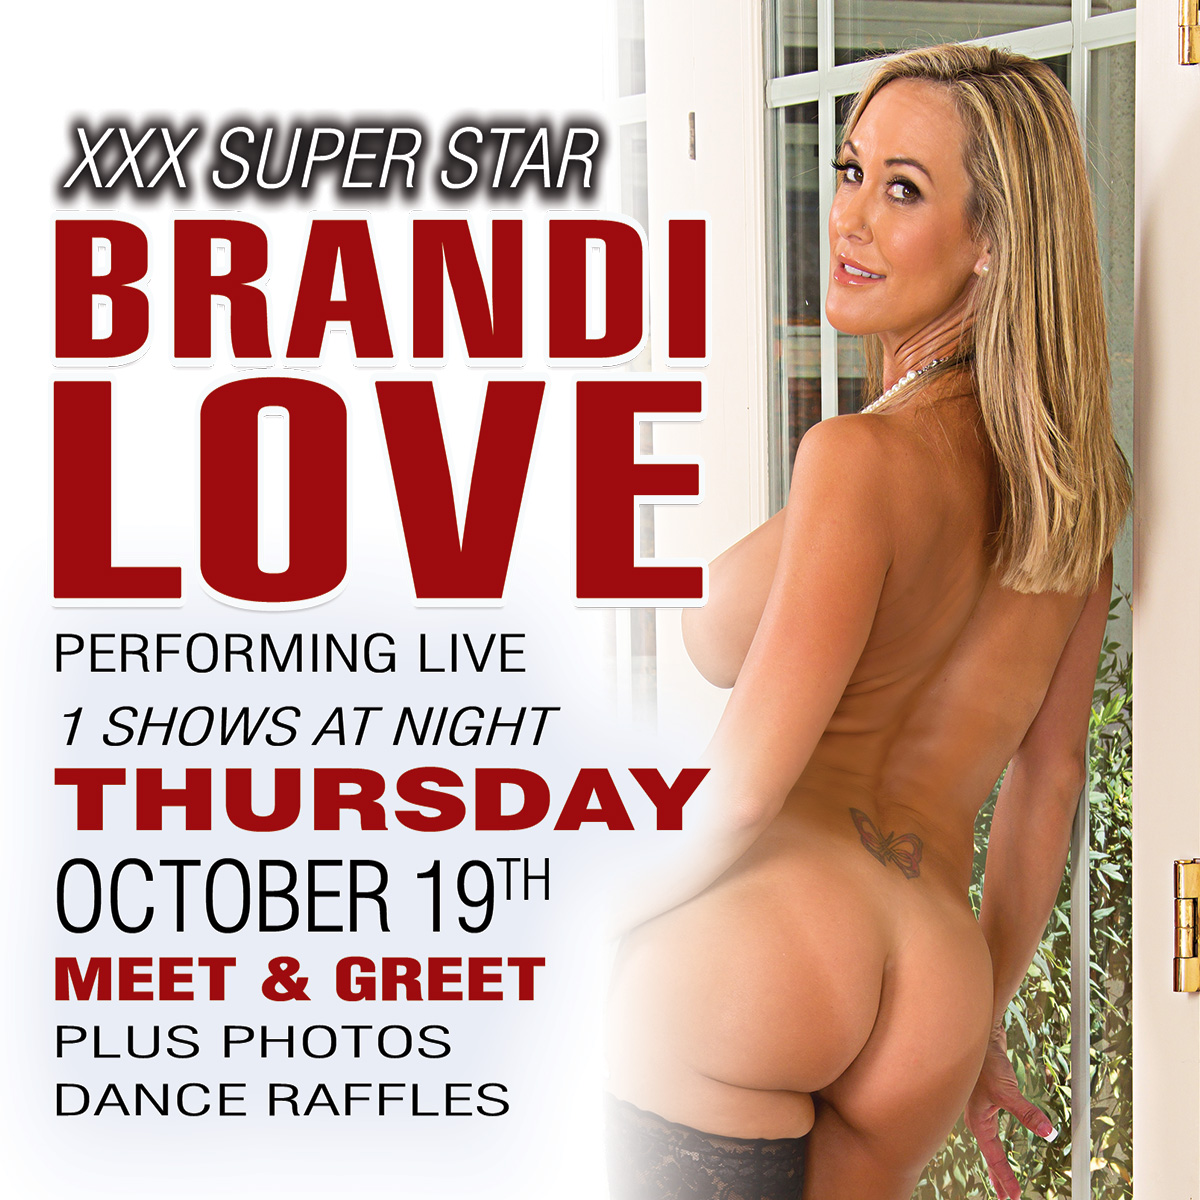 Porn Star Brandi Love | Rockstar Strip Club Connecticut